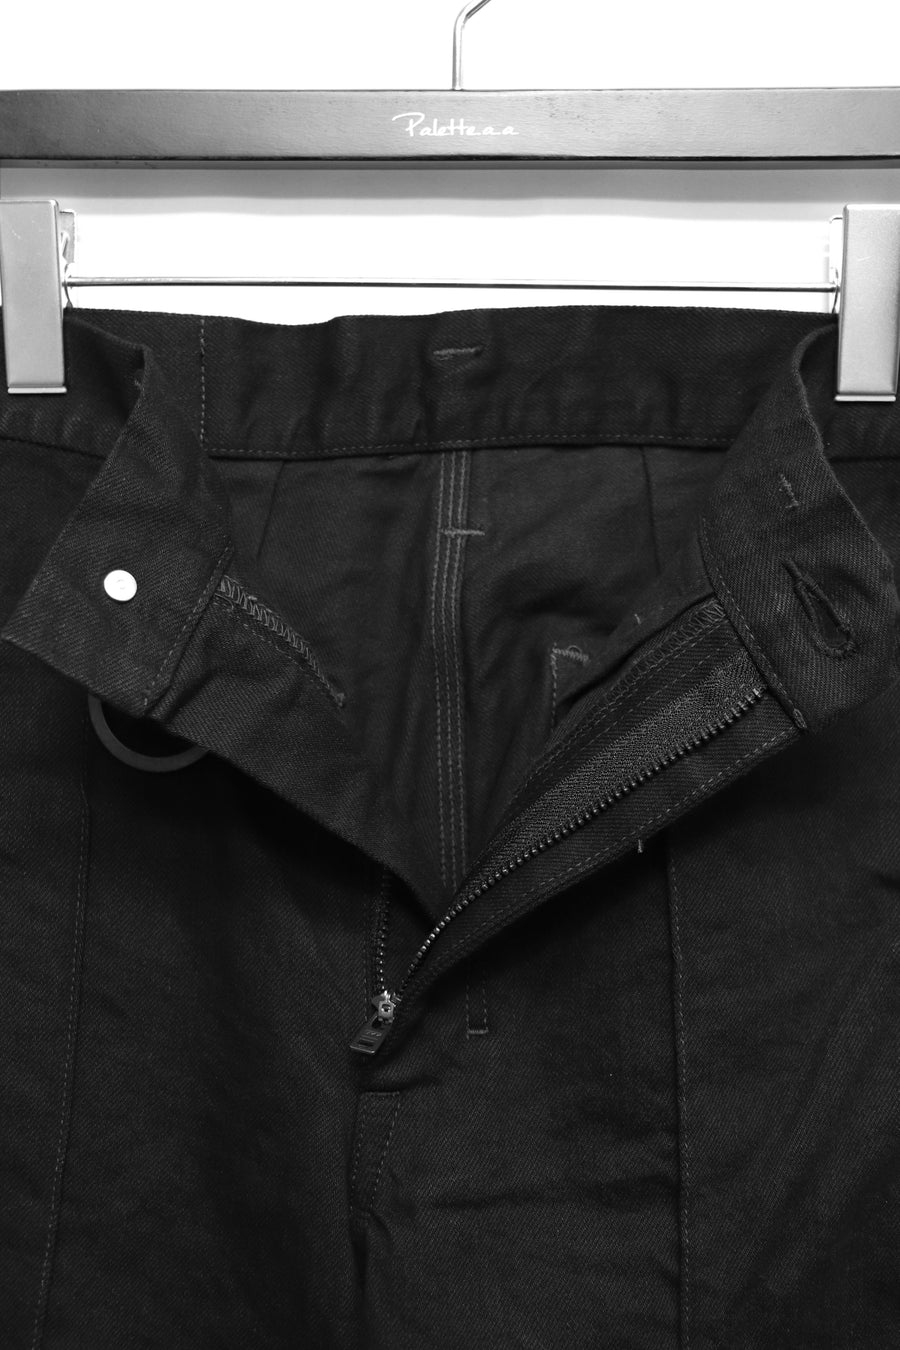 [ー]MINUS SIGUNATURE DENIM TROUSERS(FADED BLACK FLARE)